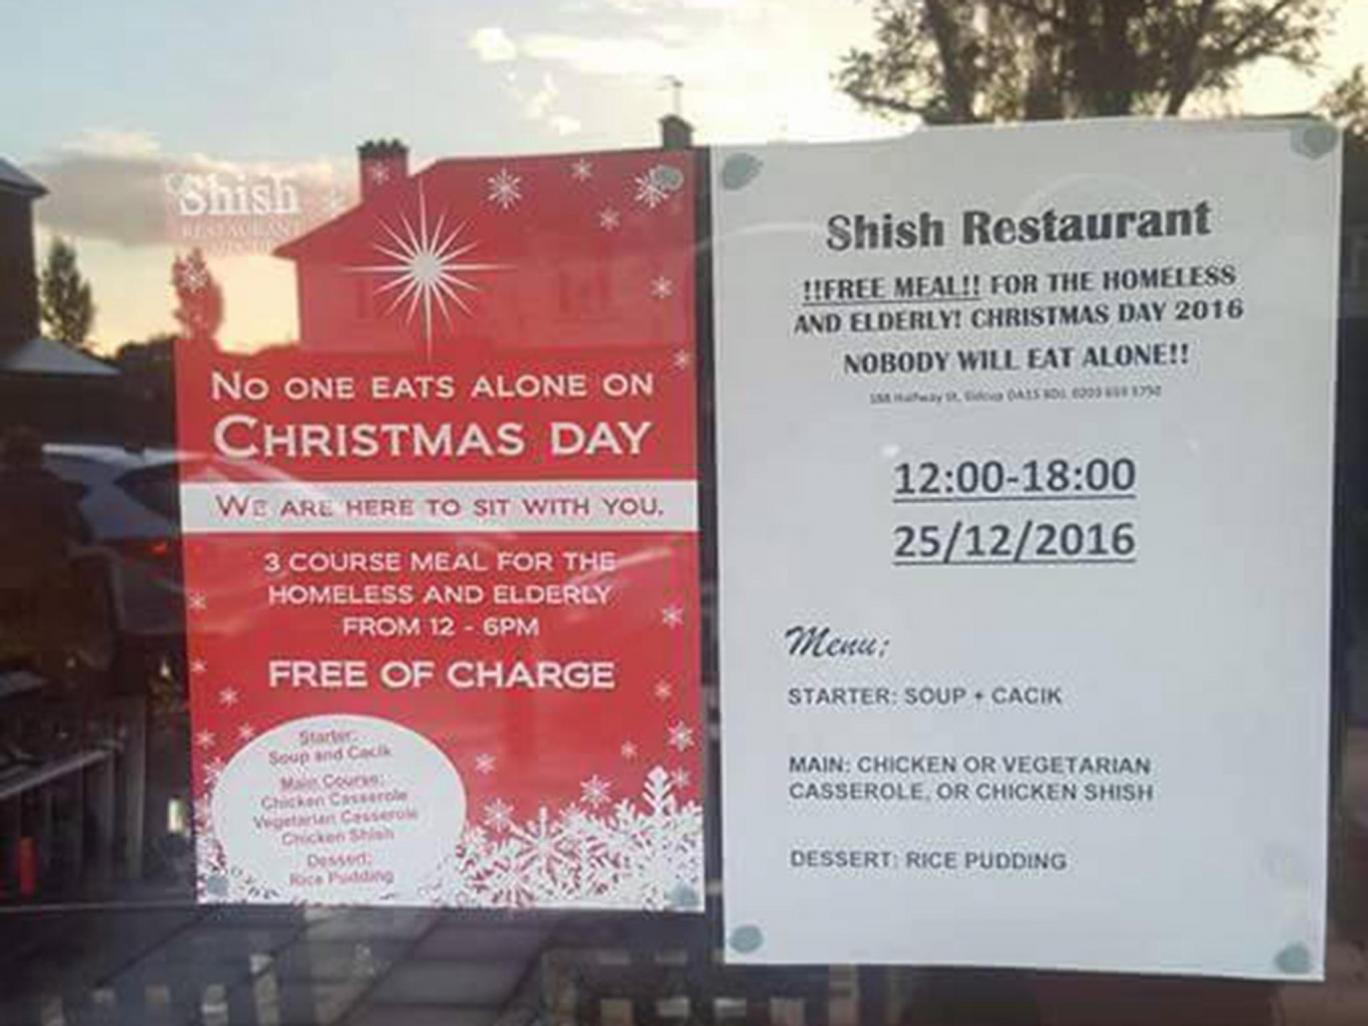 Muslim restaurant owner offers free Christmas meals for homeless and the elderly